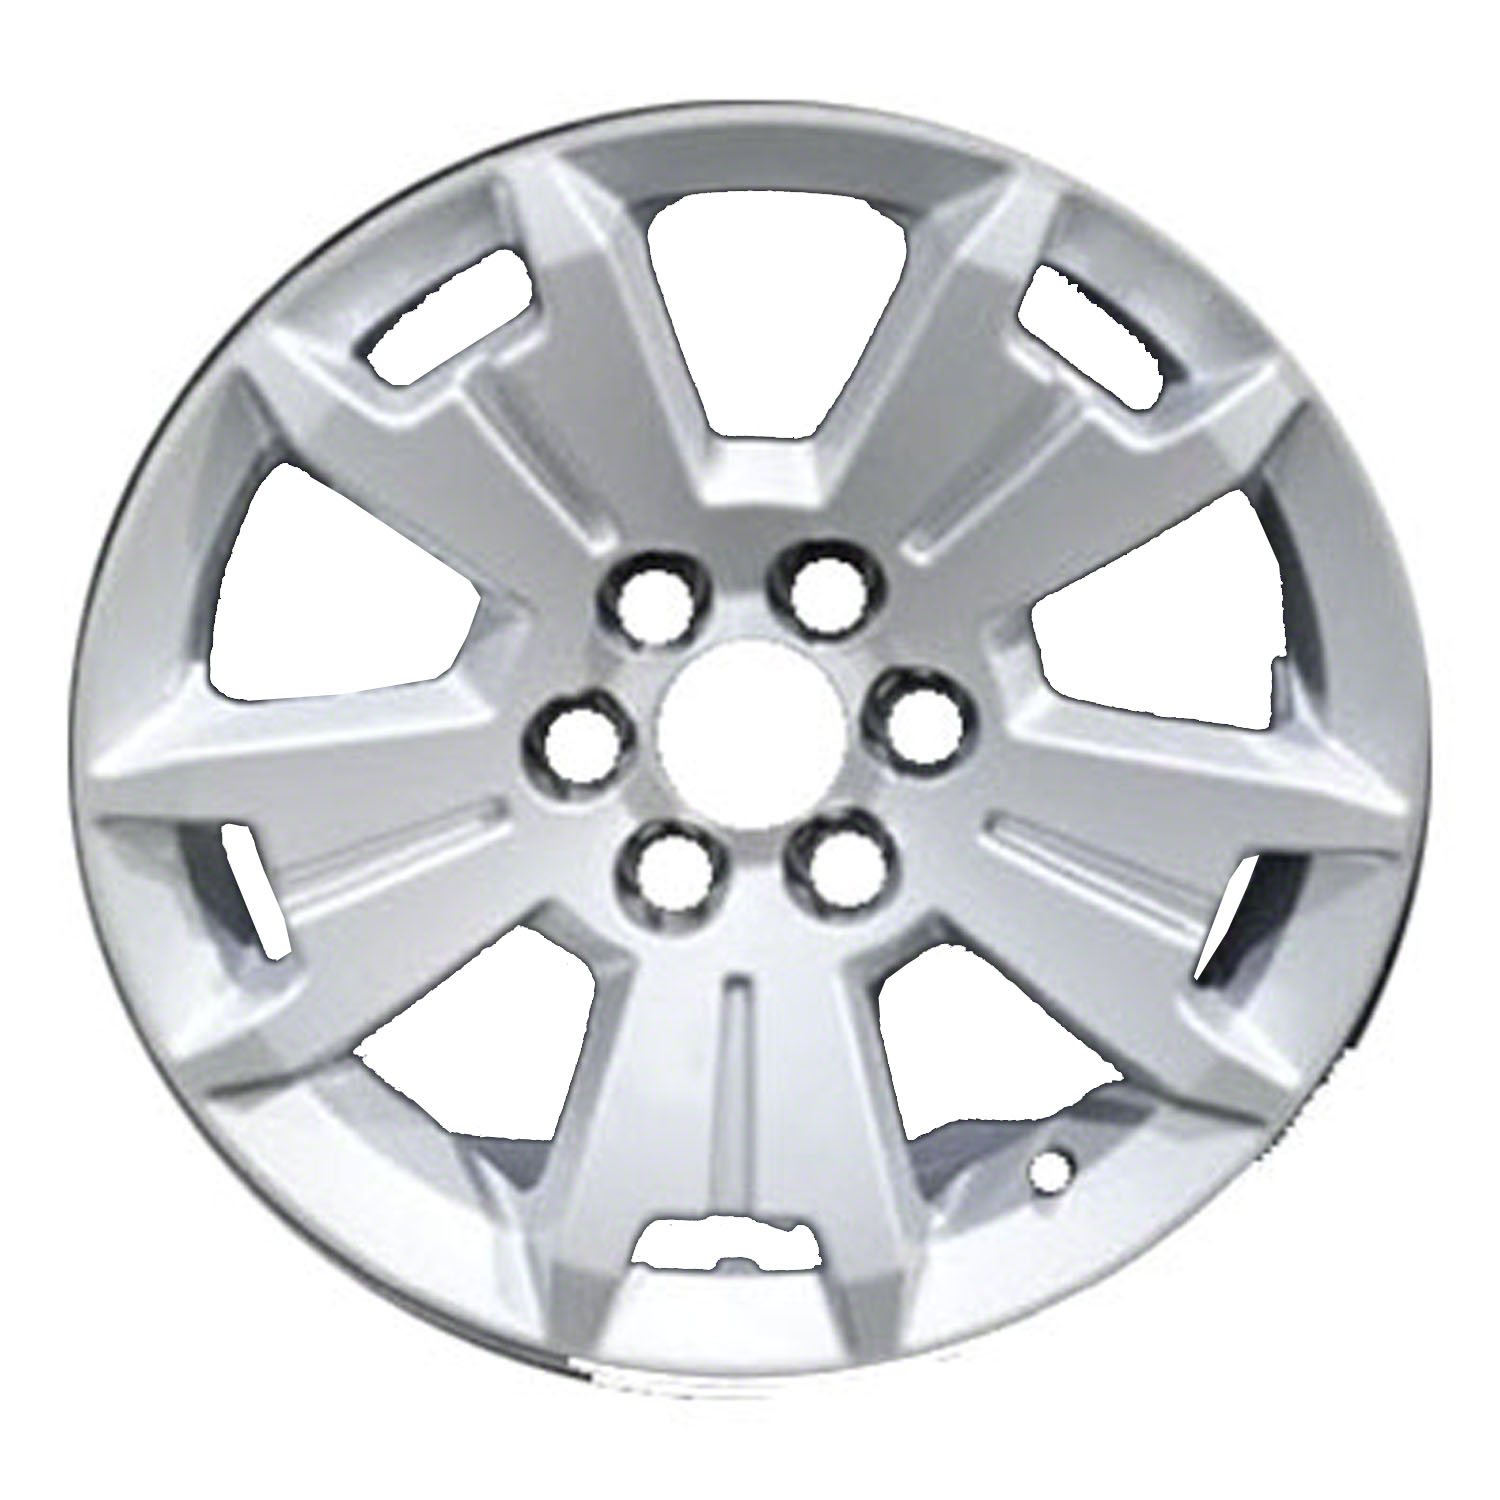 6 lug 120mm OEM Chevy Colorado Center Cap ONLY Used for 17x8